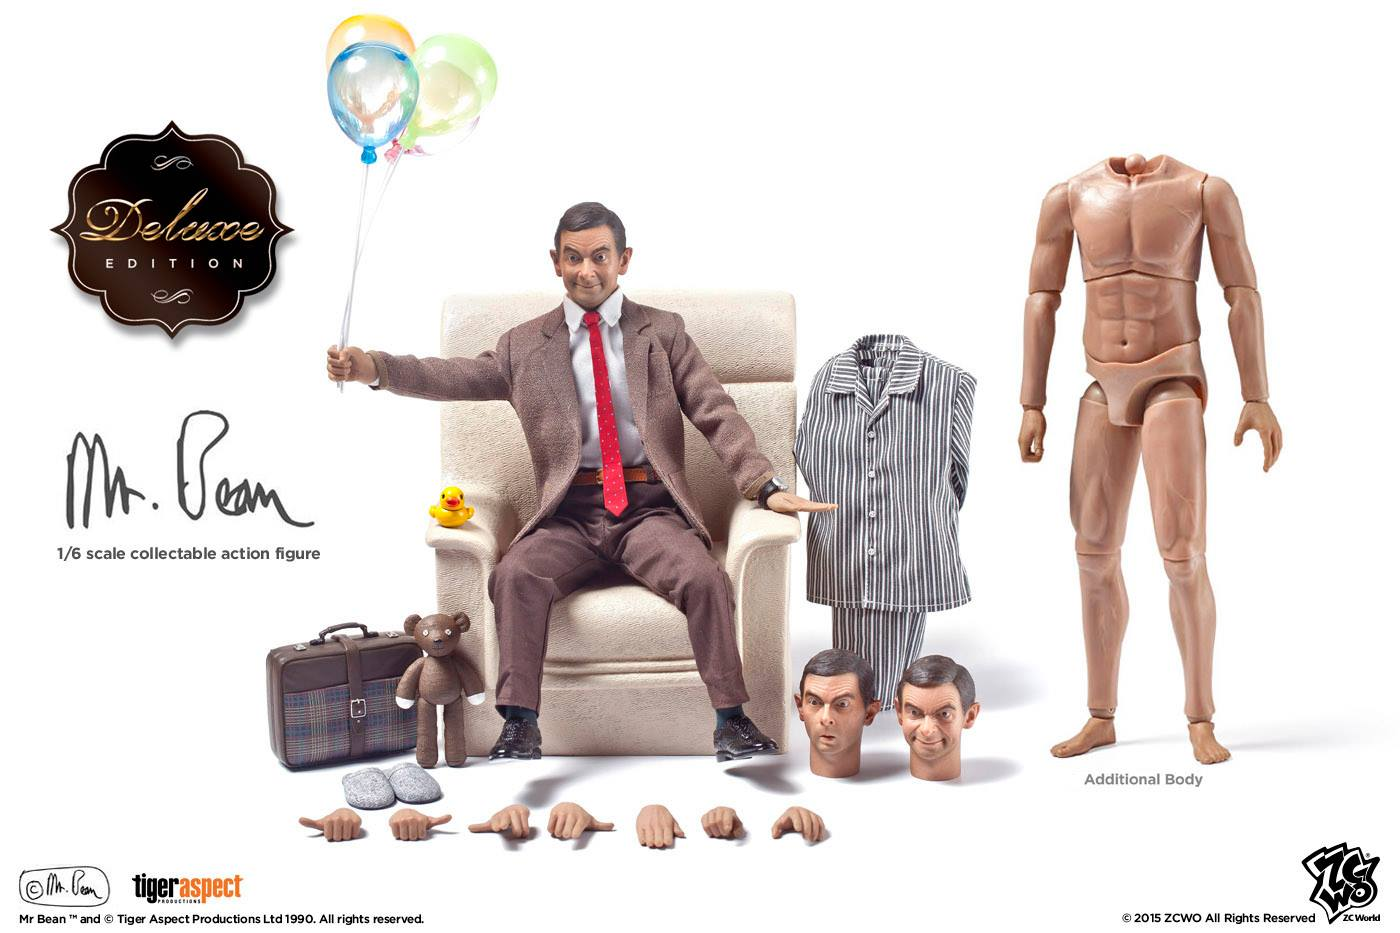 [ZCWO] Mr. Bean - 1/6 scale 150251fi1hvnb3xrricgvv